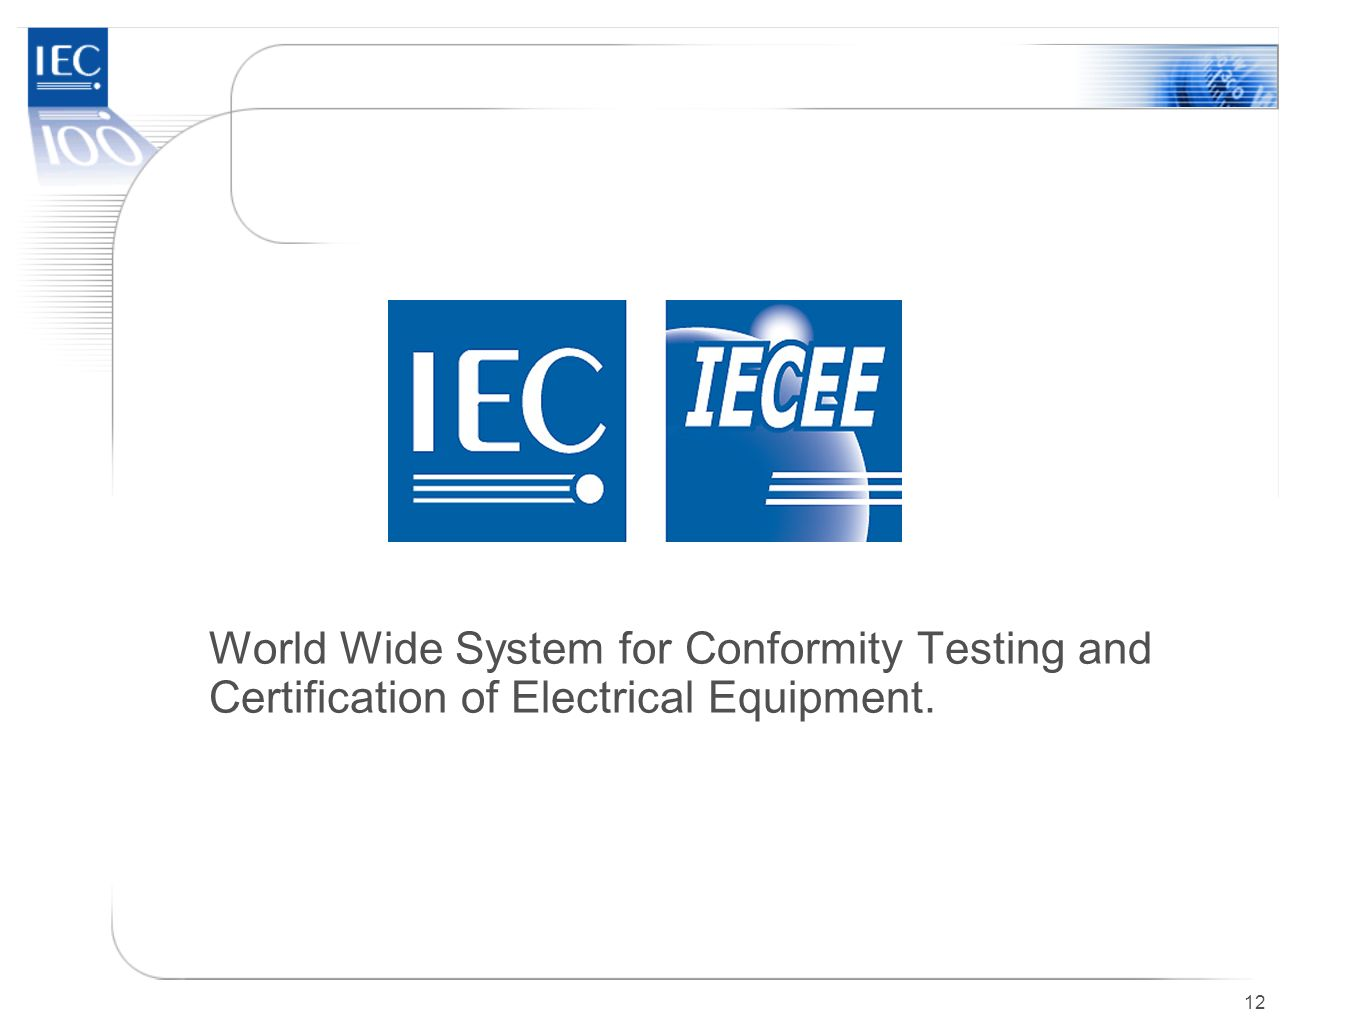 World Wide System for Conformity Testing and Certification of Electrical Equipment.